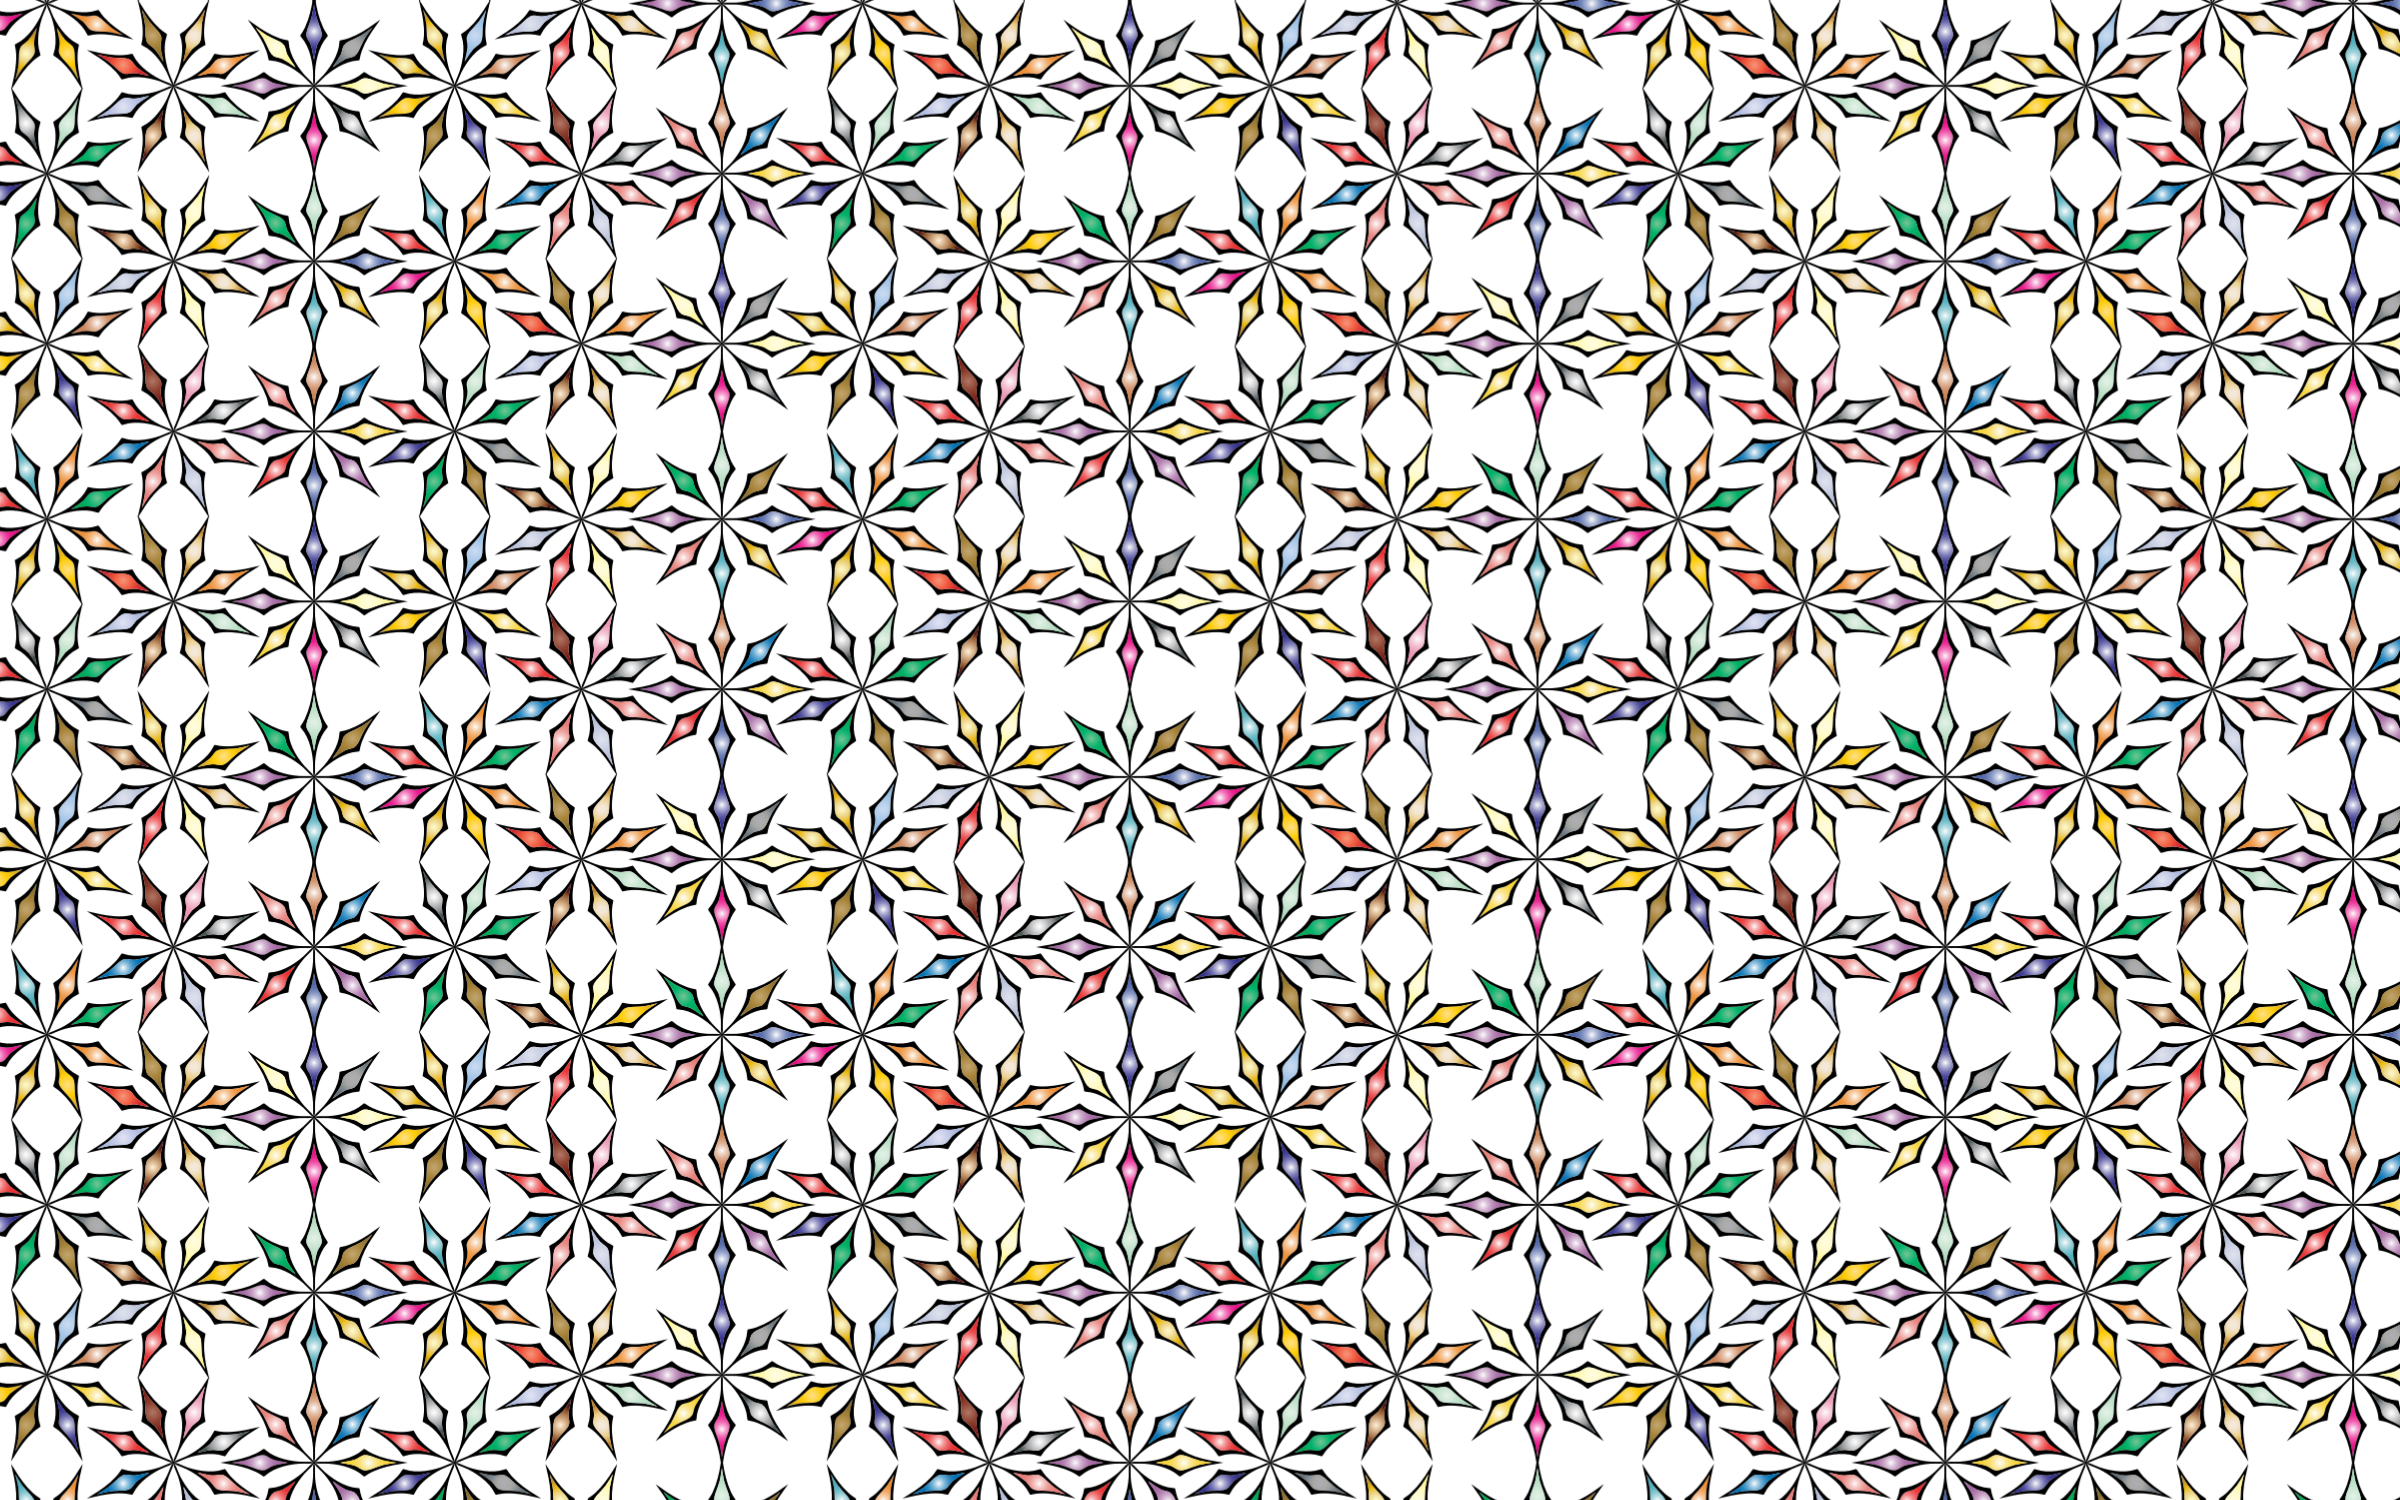 Seamless Chromatic Ornamental Divider Pattern 3 by GDJ